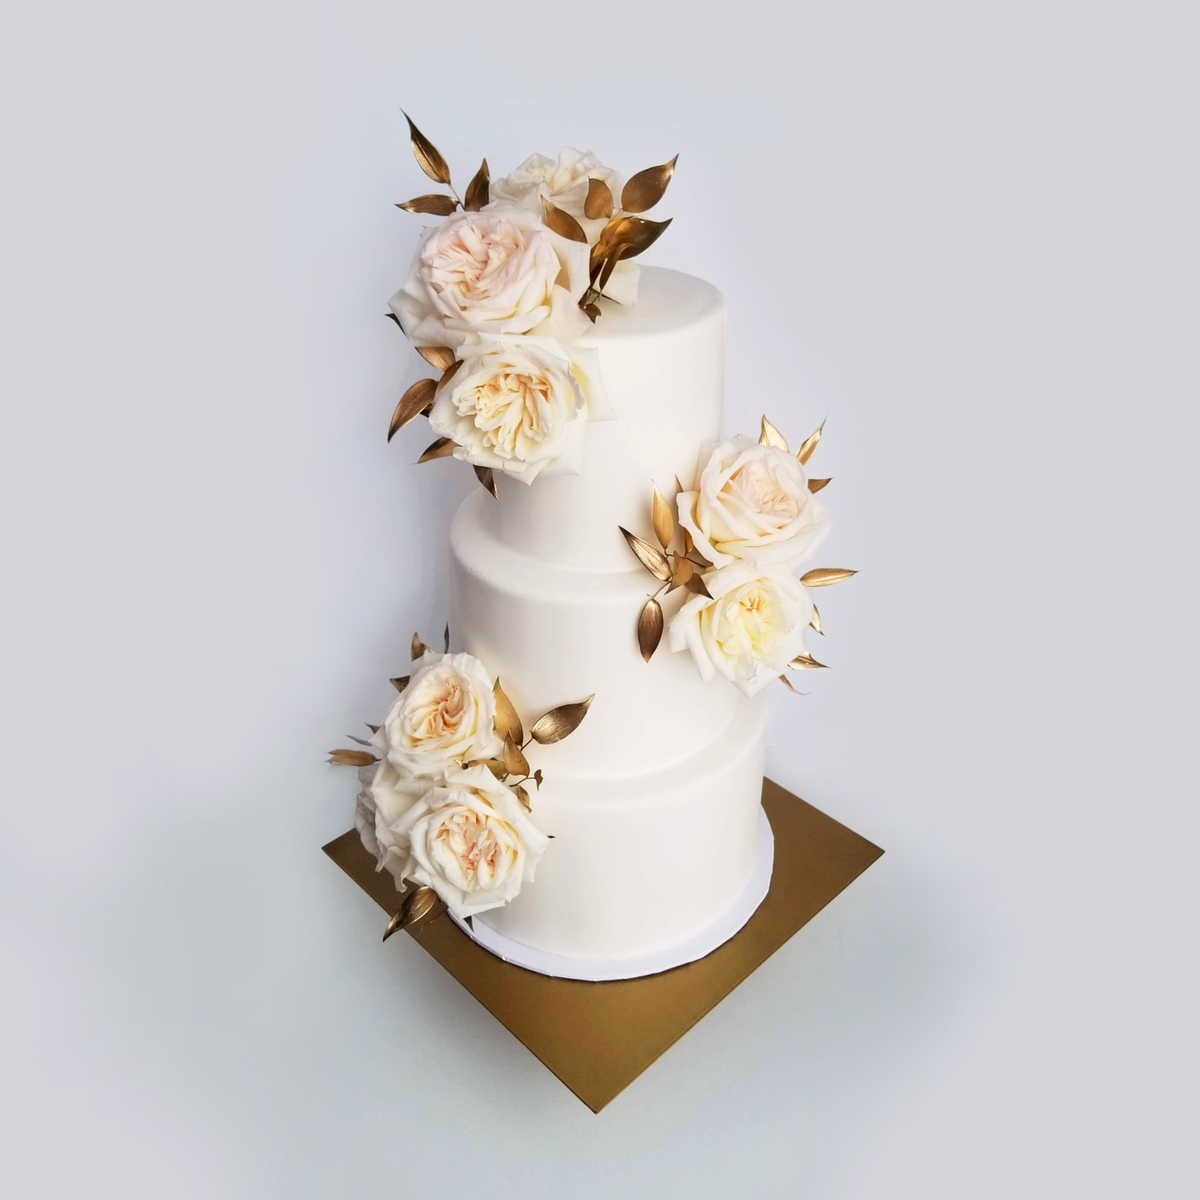 Whippt Desserts - Wedding Cake Oct 2018 - Flowers by Fleurish